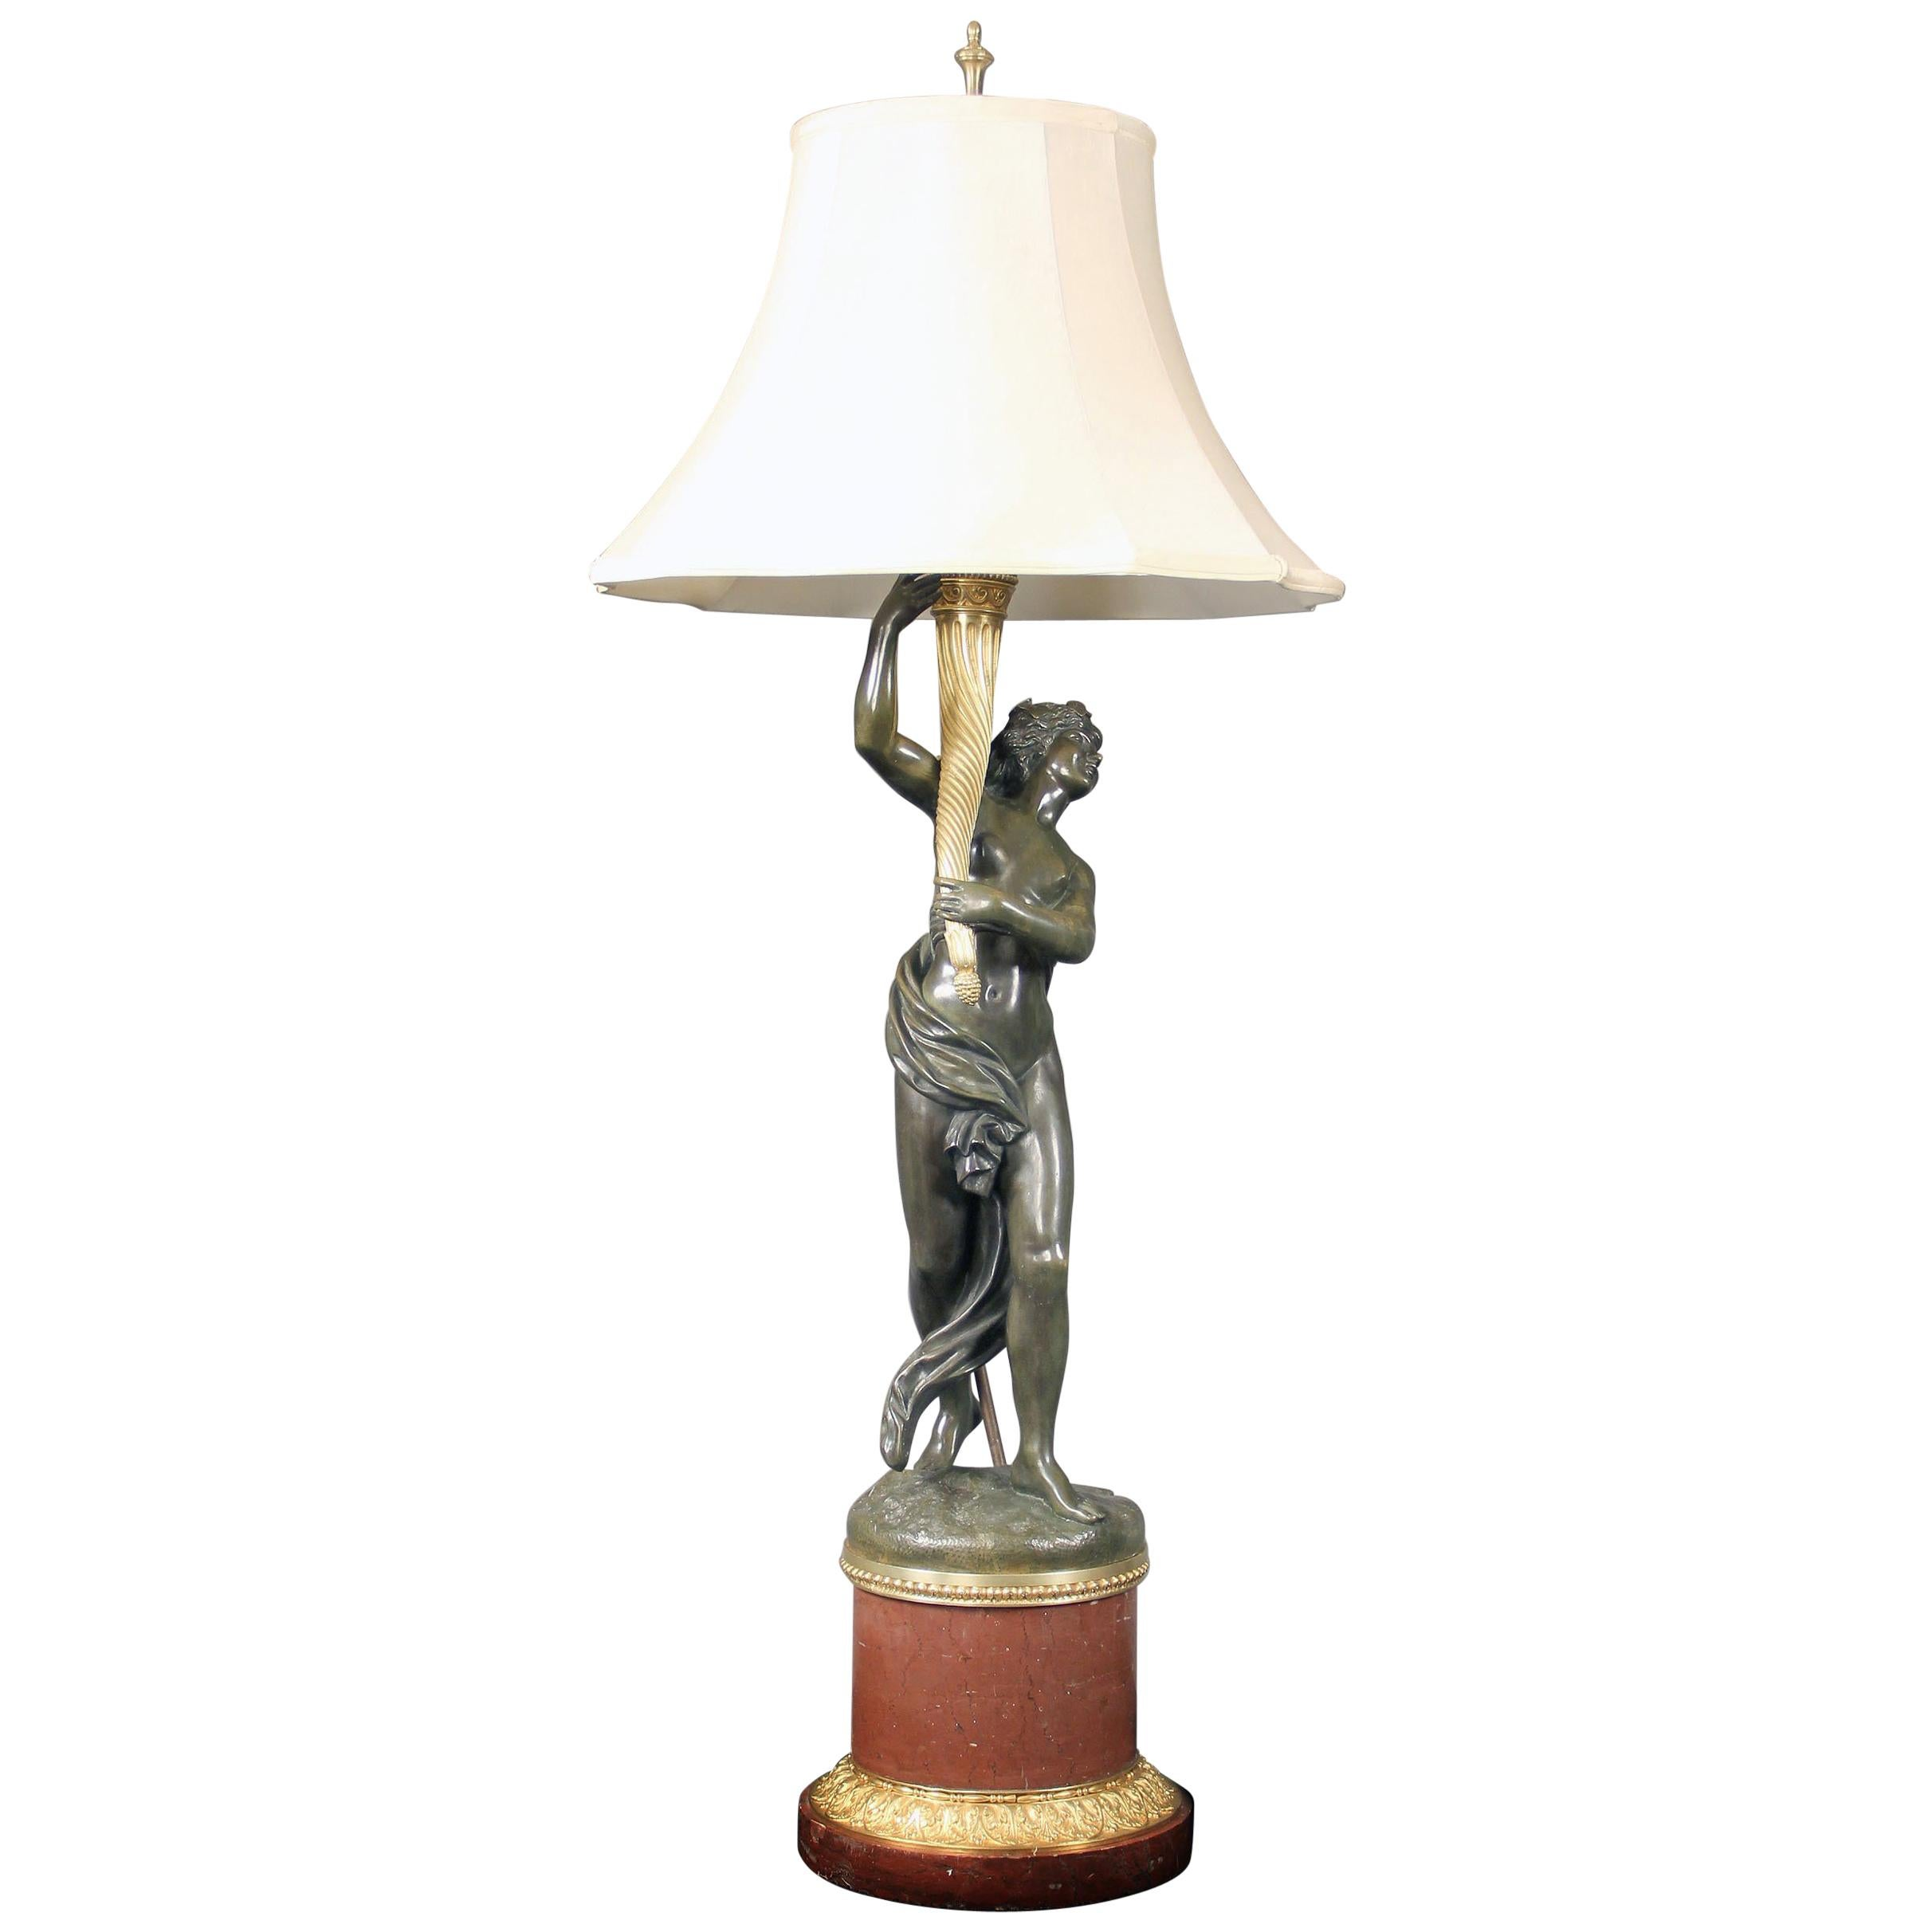 Late 19th Century Two-Tone Bronze Lamp after Clodion